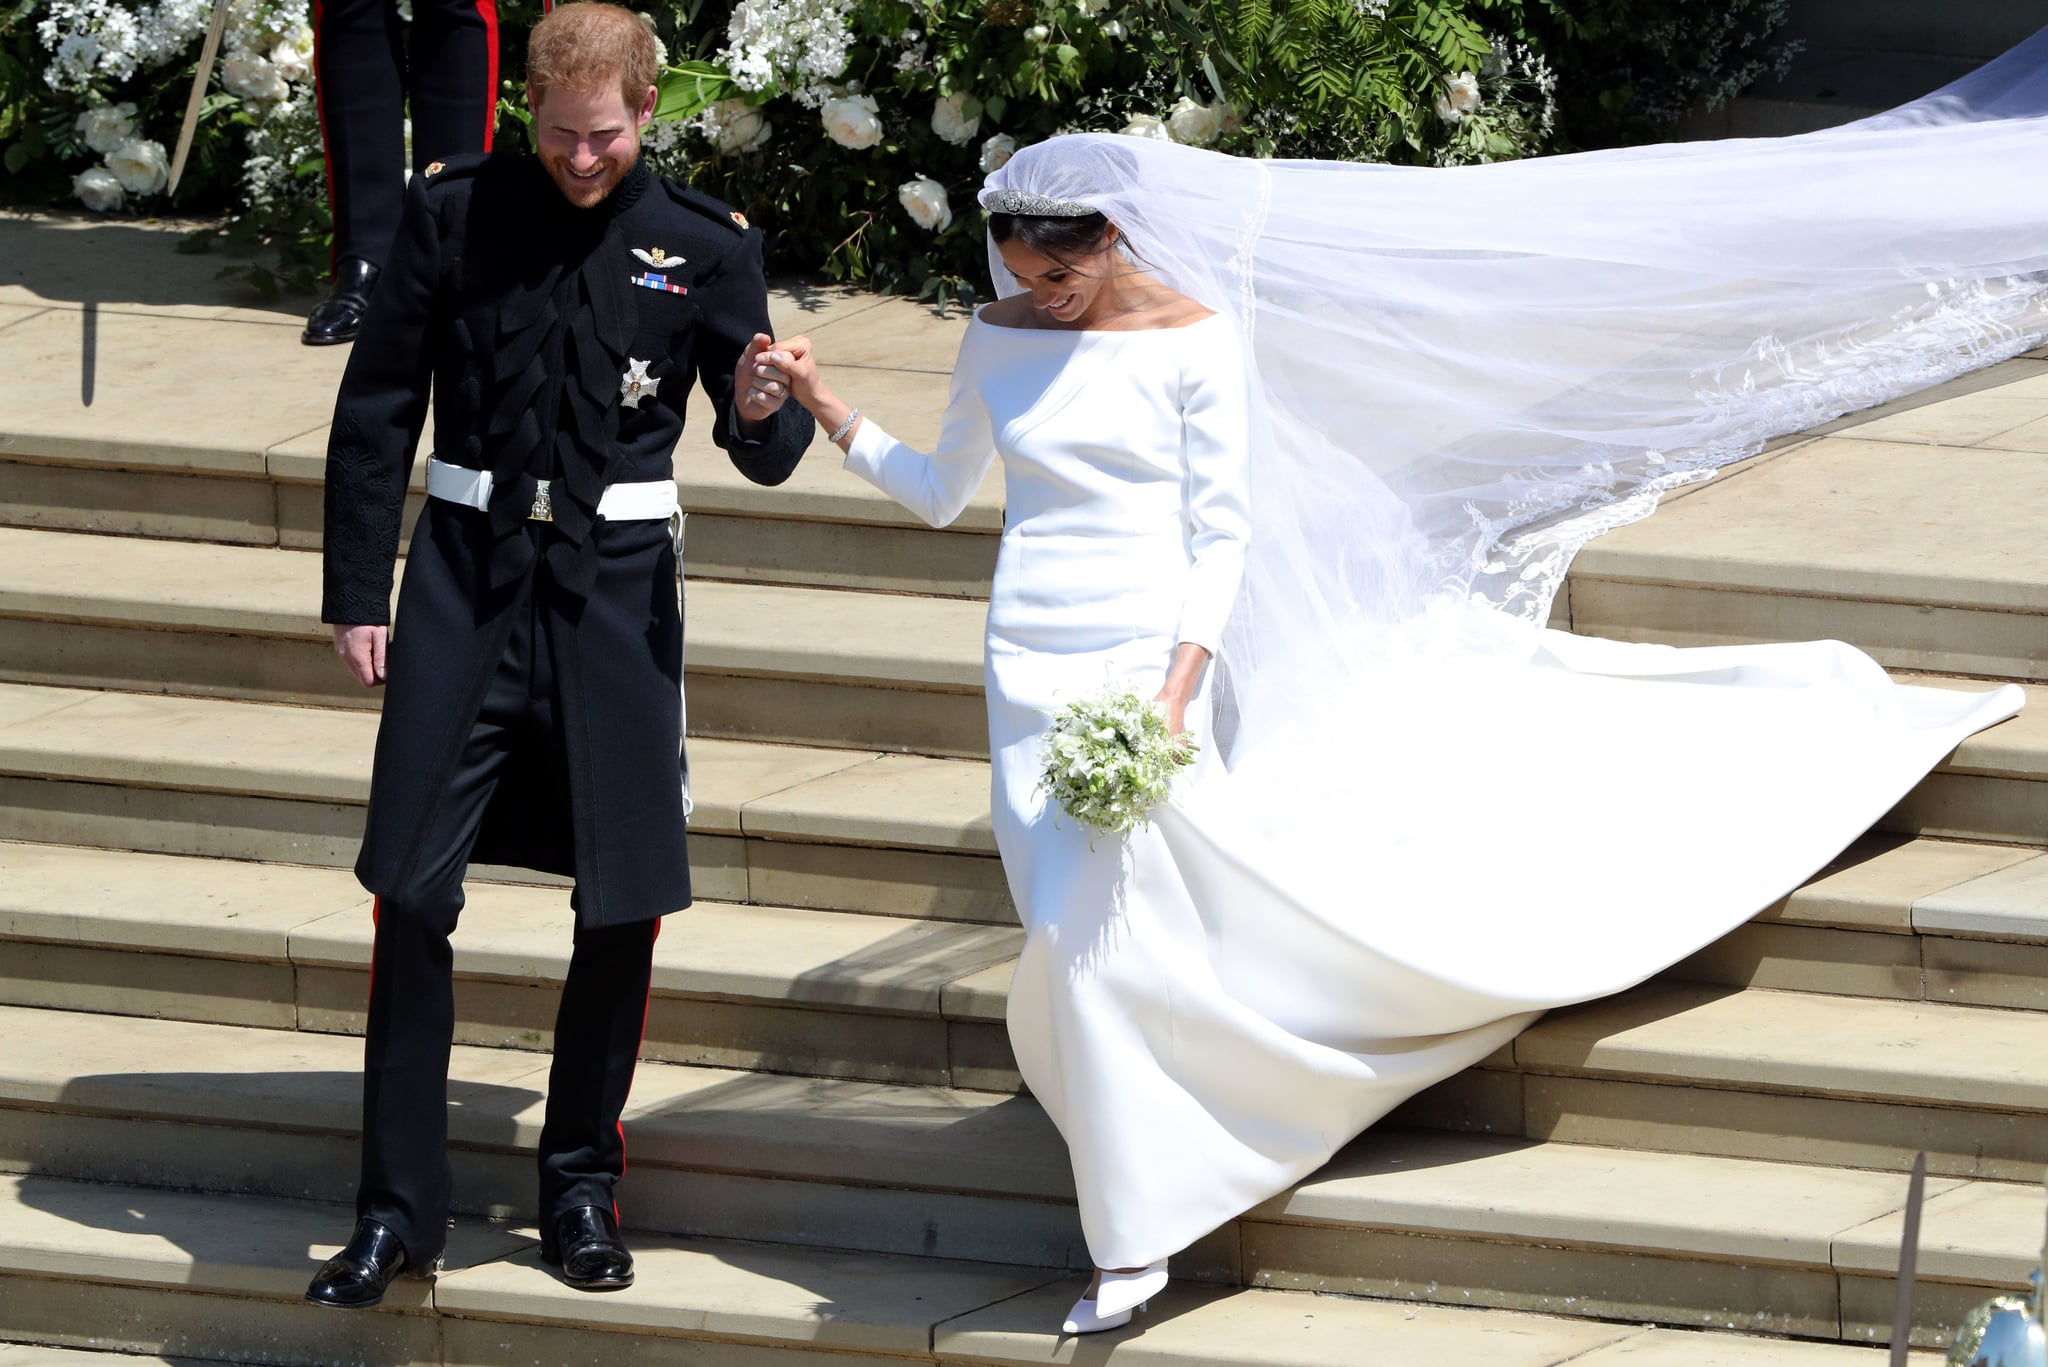 The Best Megan Markle Wedding Dress